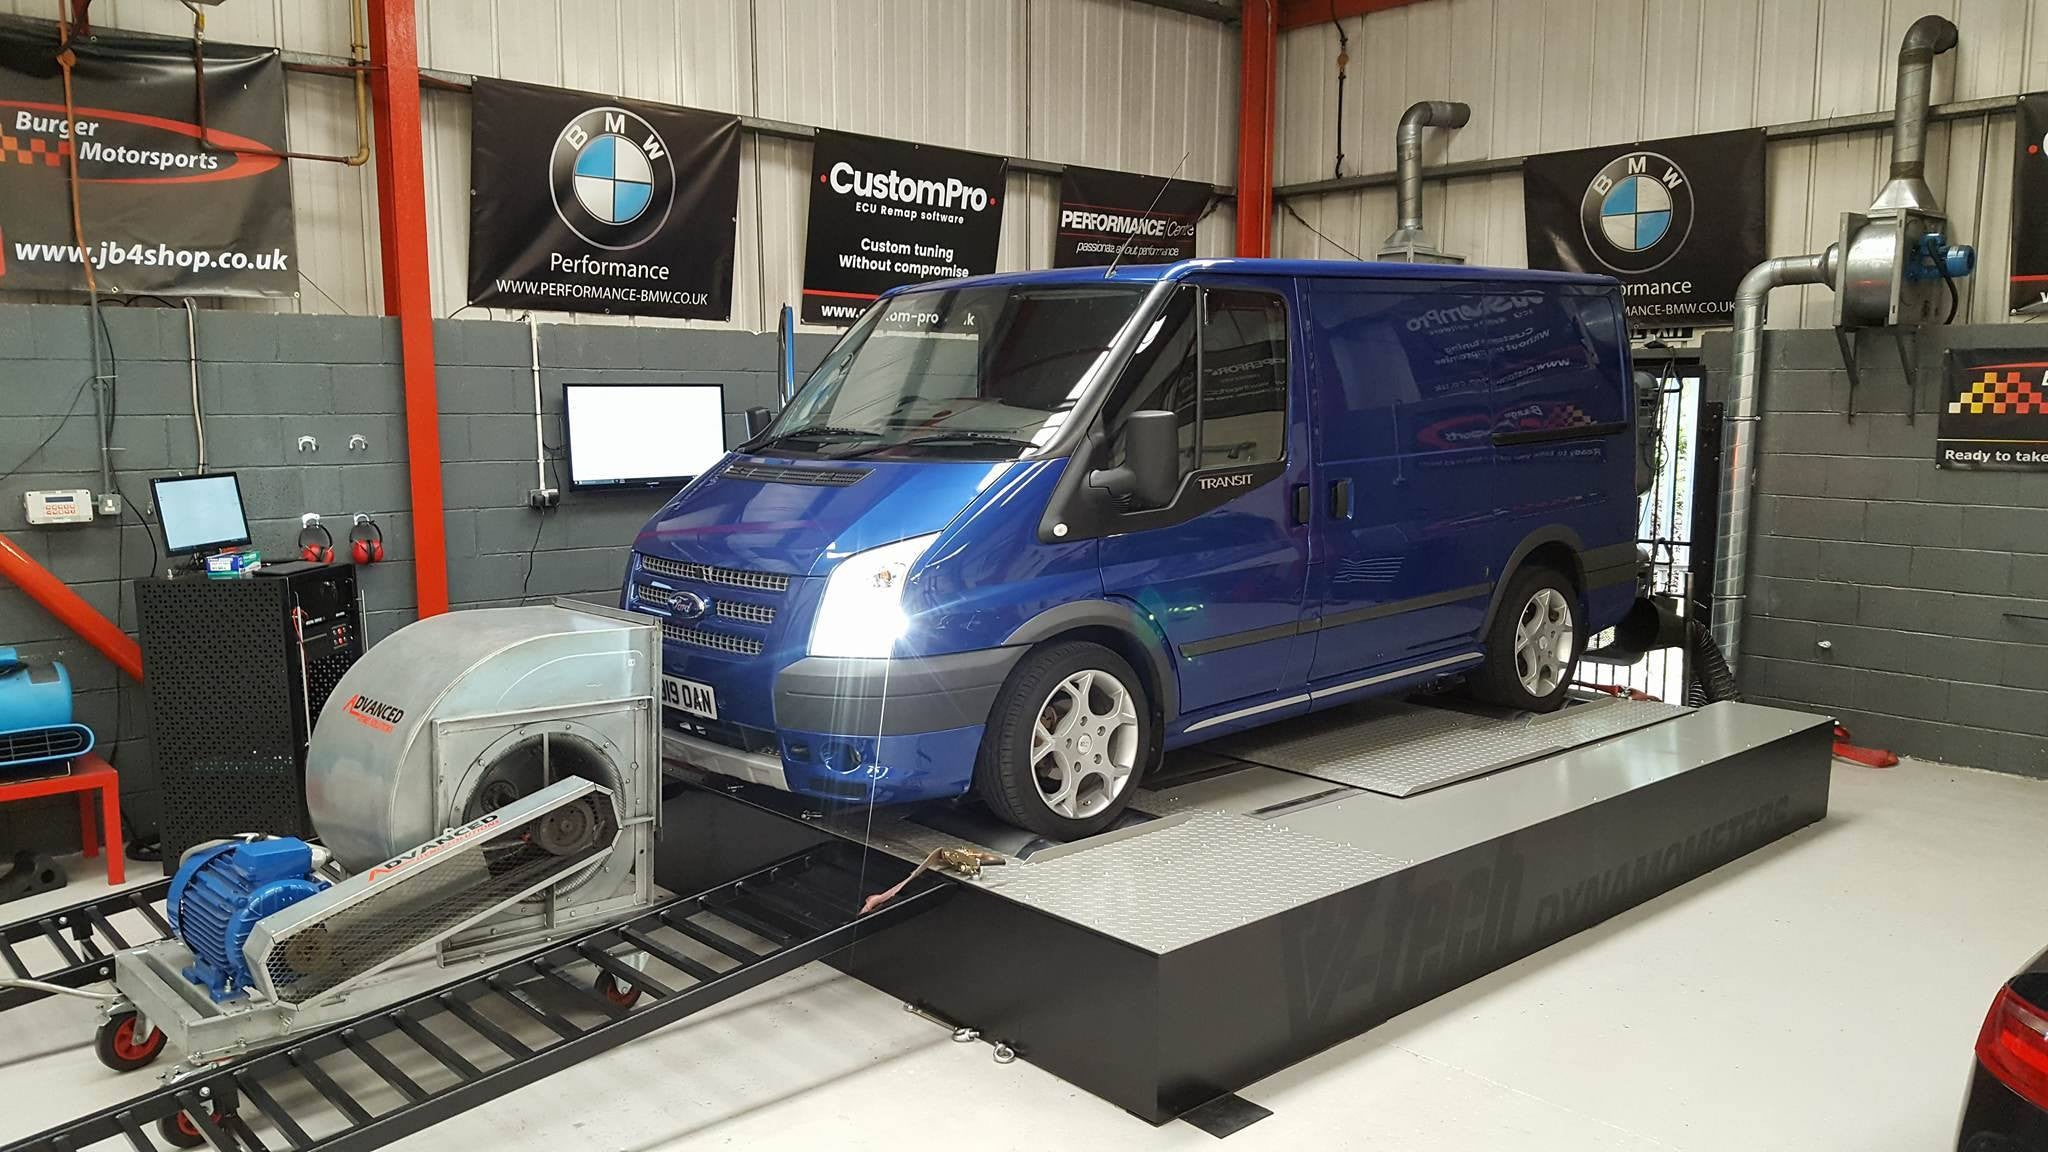 Ford Transit 2.2 140 - CustomPro remap